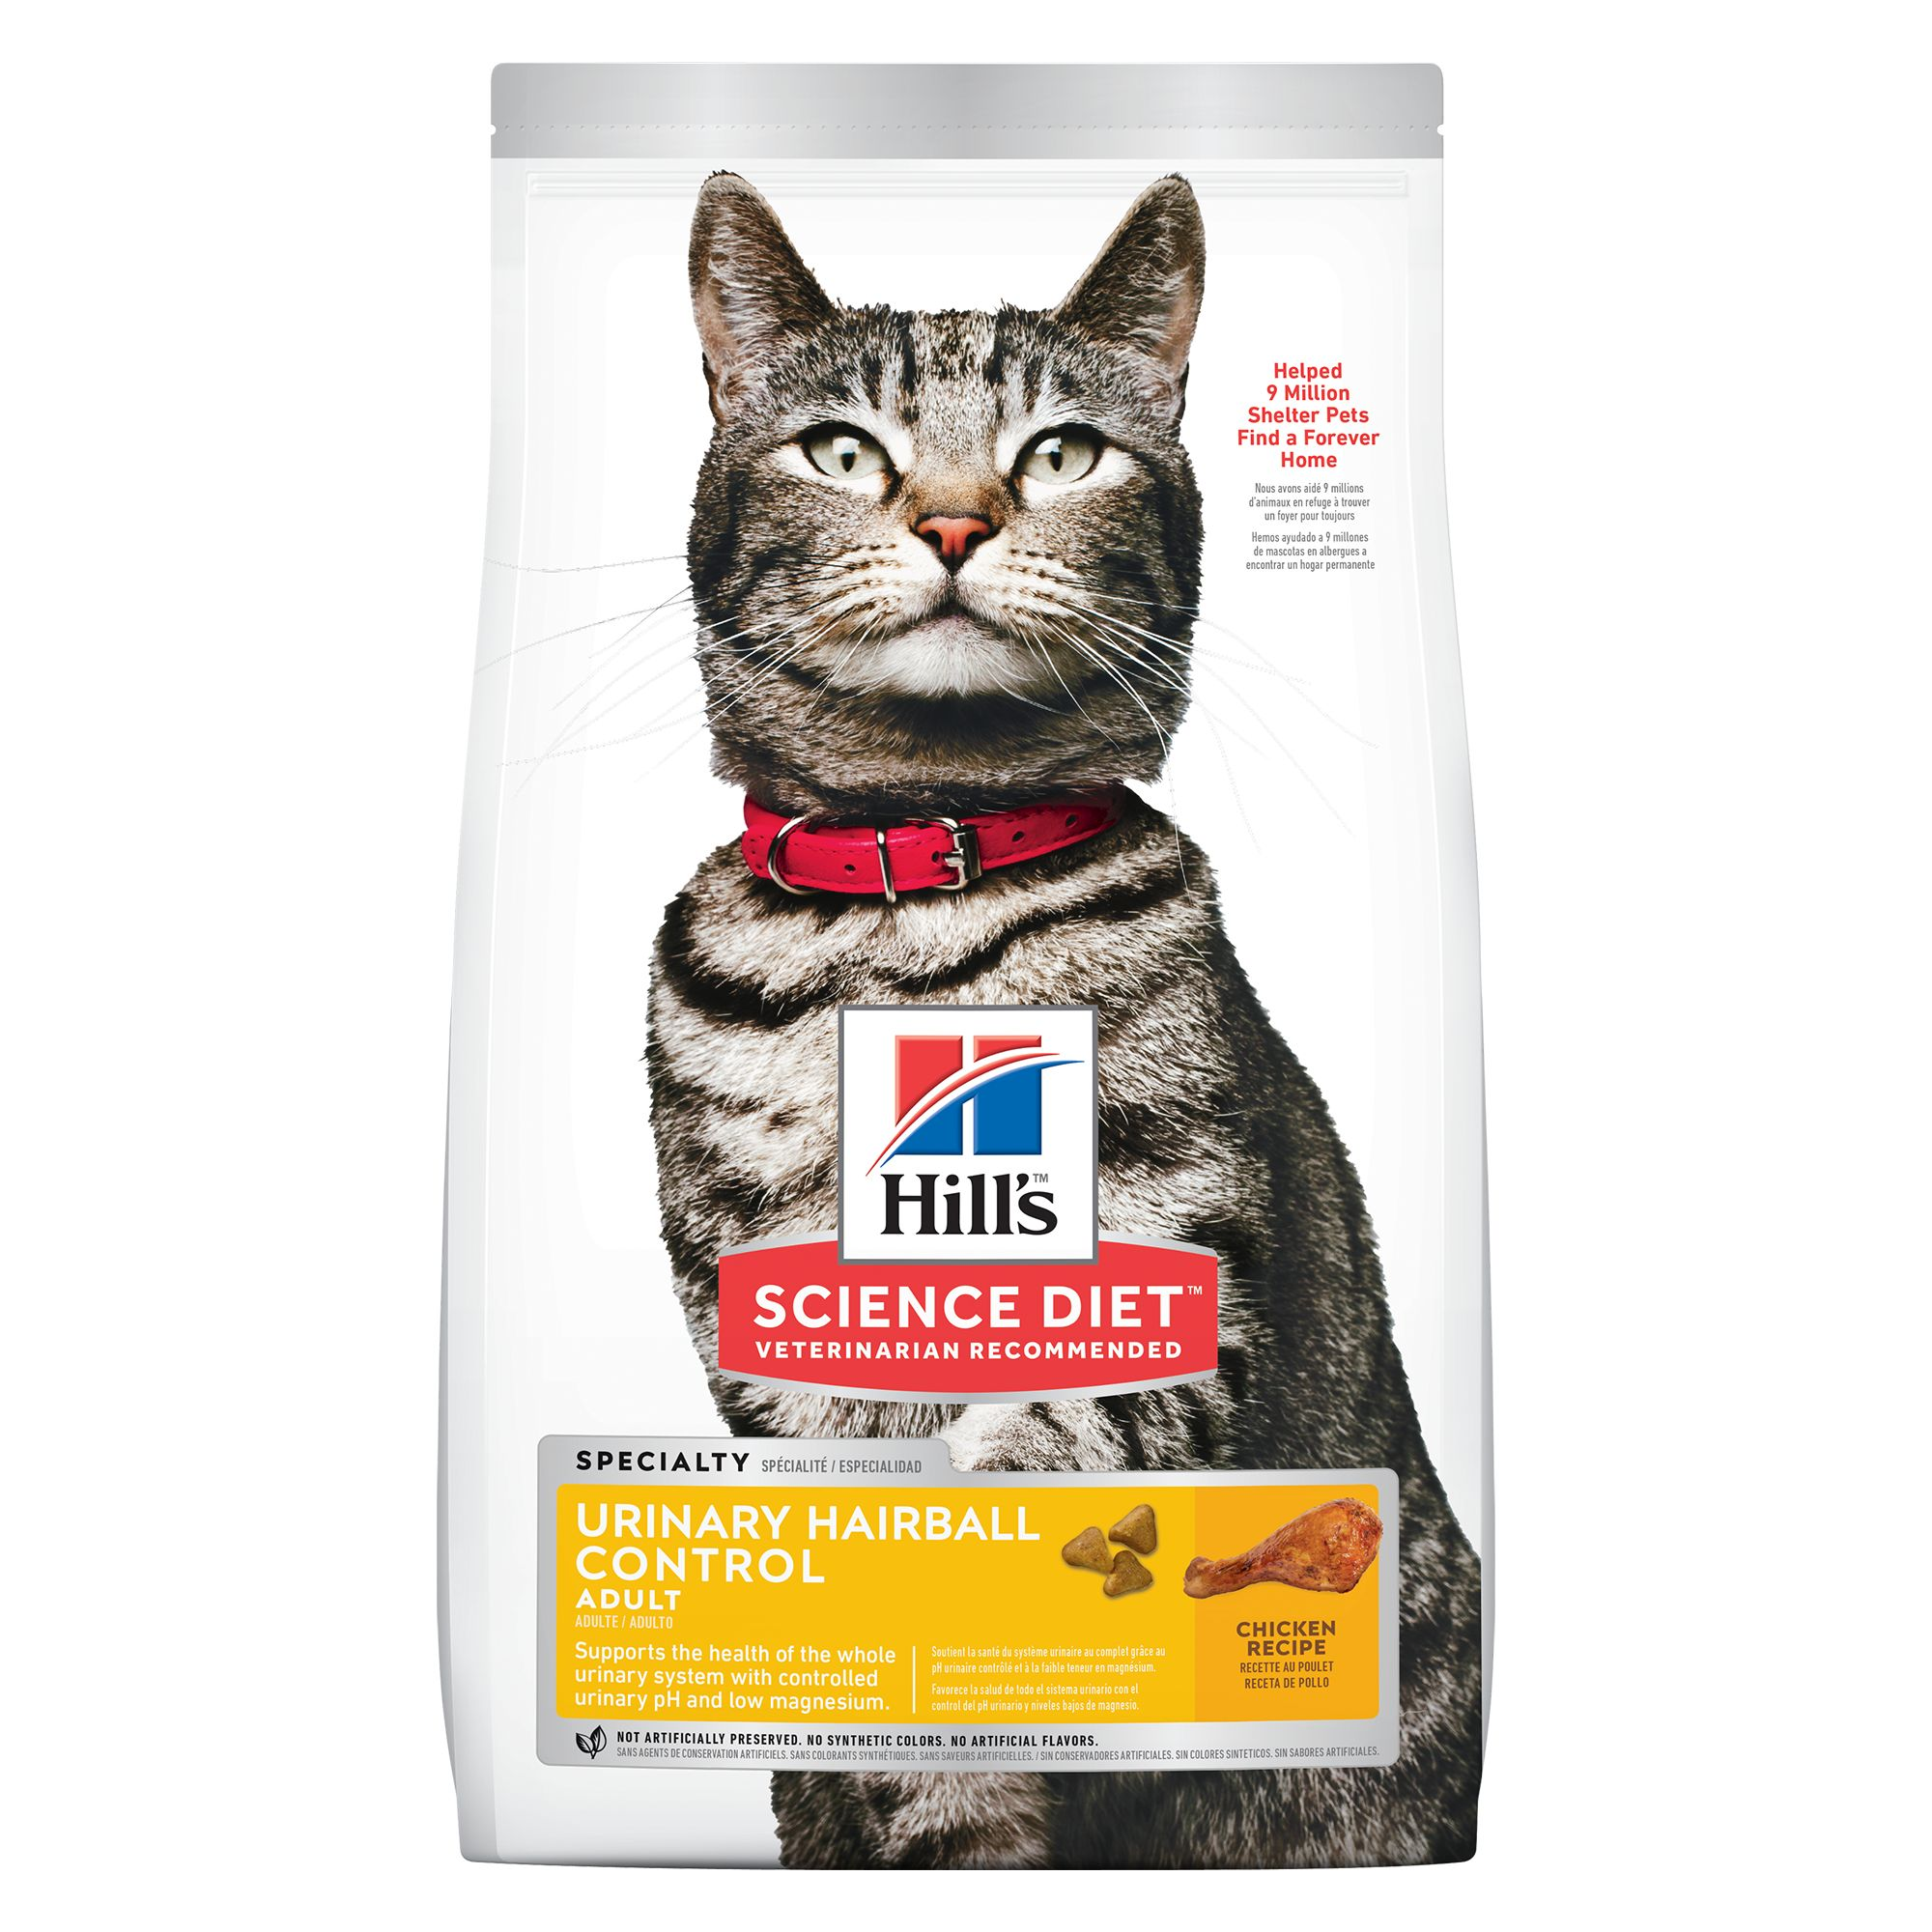 Hill's Science Diet Urinary Hairball Control Adult Cat Food - Chicken size: 3.5 Lb, Kibble 5237183